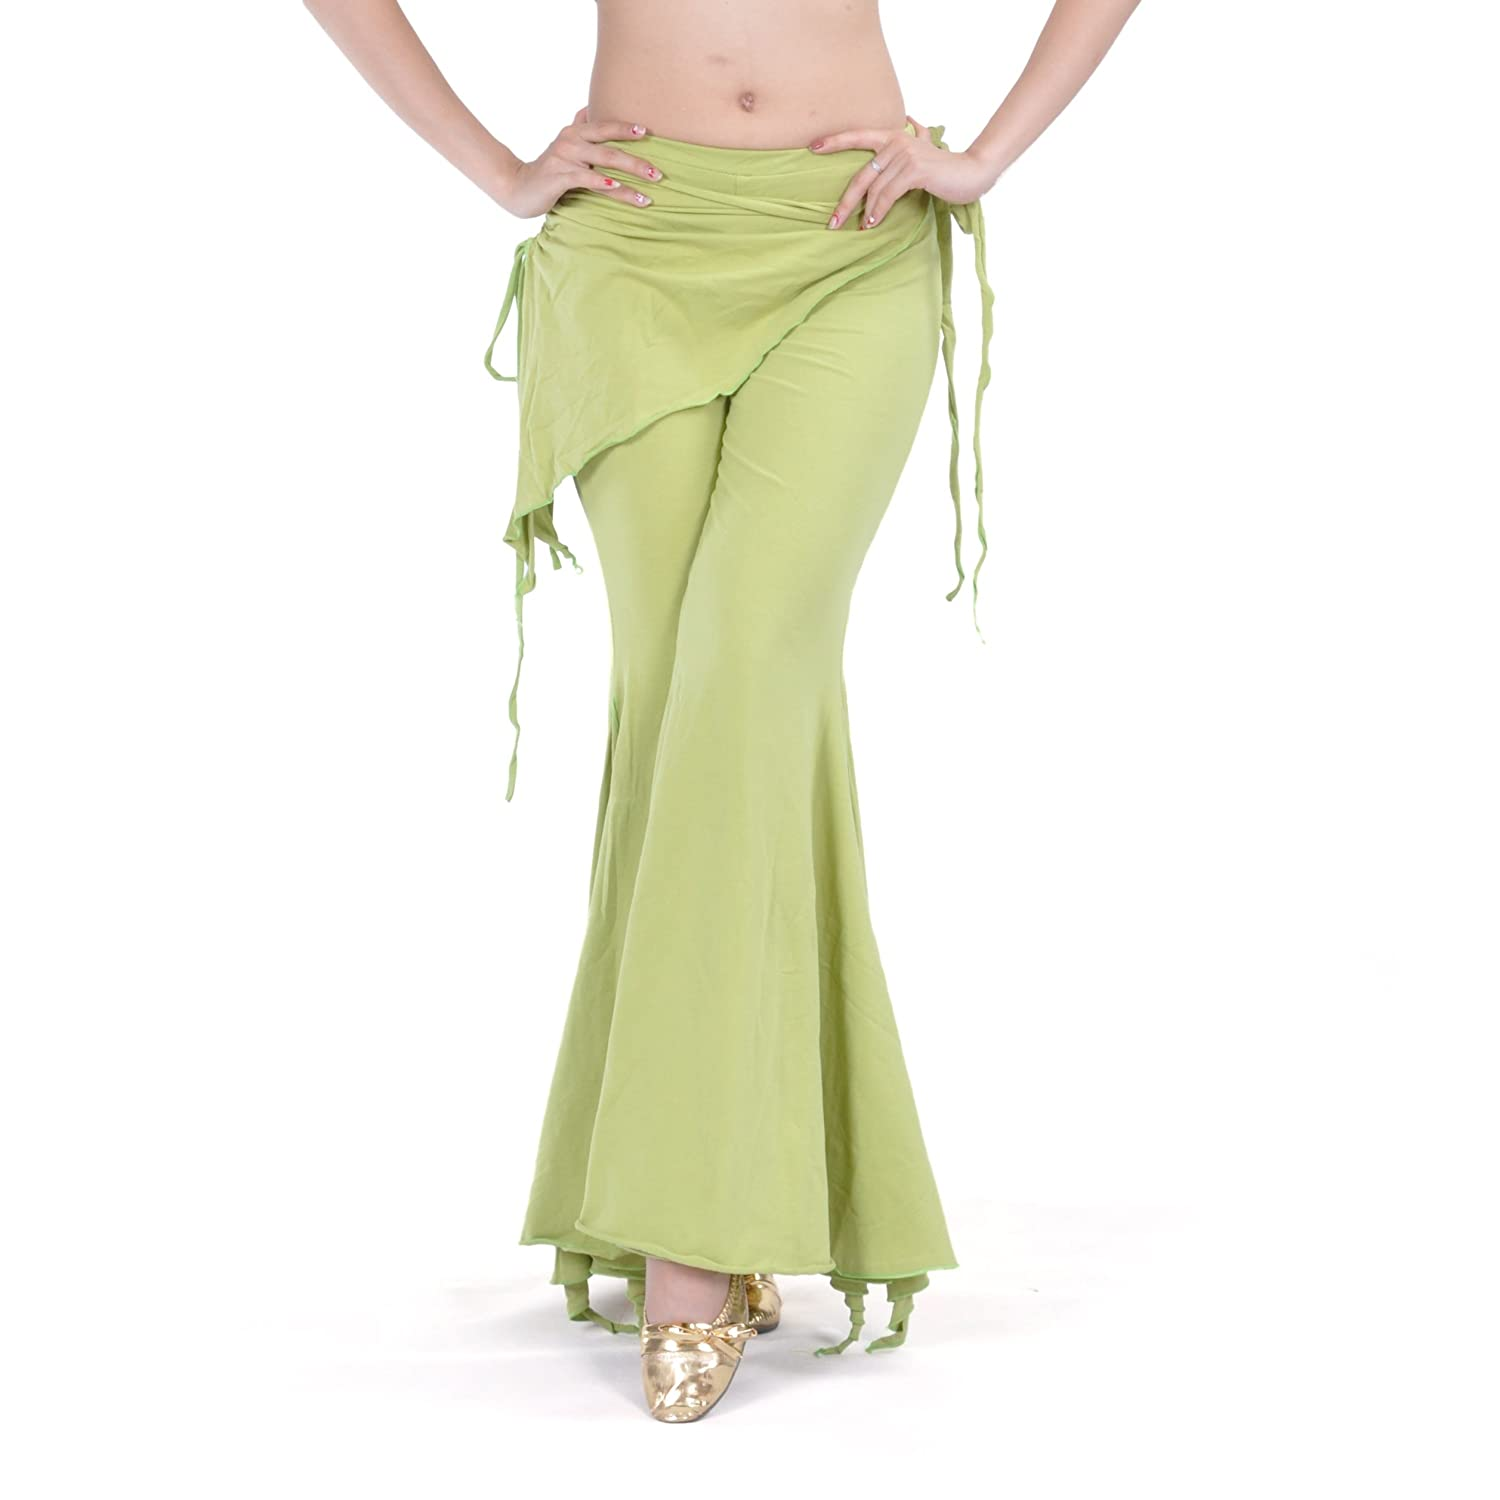 BellyLady Tribal Belly Dance Yoga Flare Pants Trousers